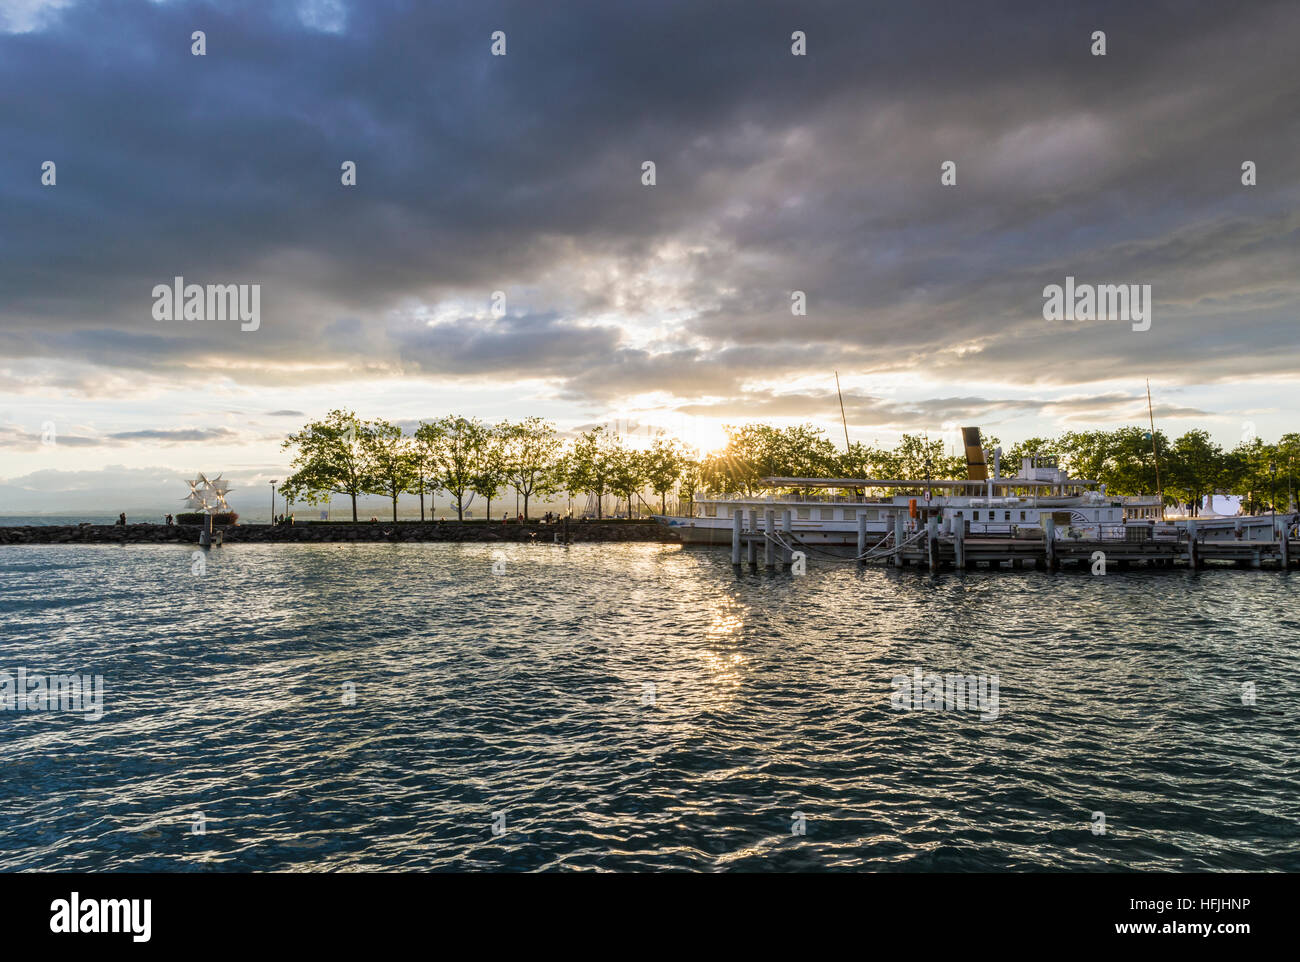 Late sun through clouds over a paddle steamer at the port of Ouchy, Lausanne, Vaud, Switzerland - Stock Image